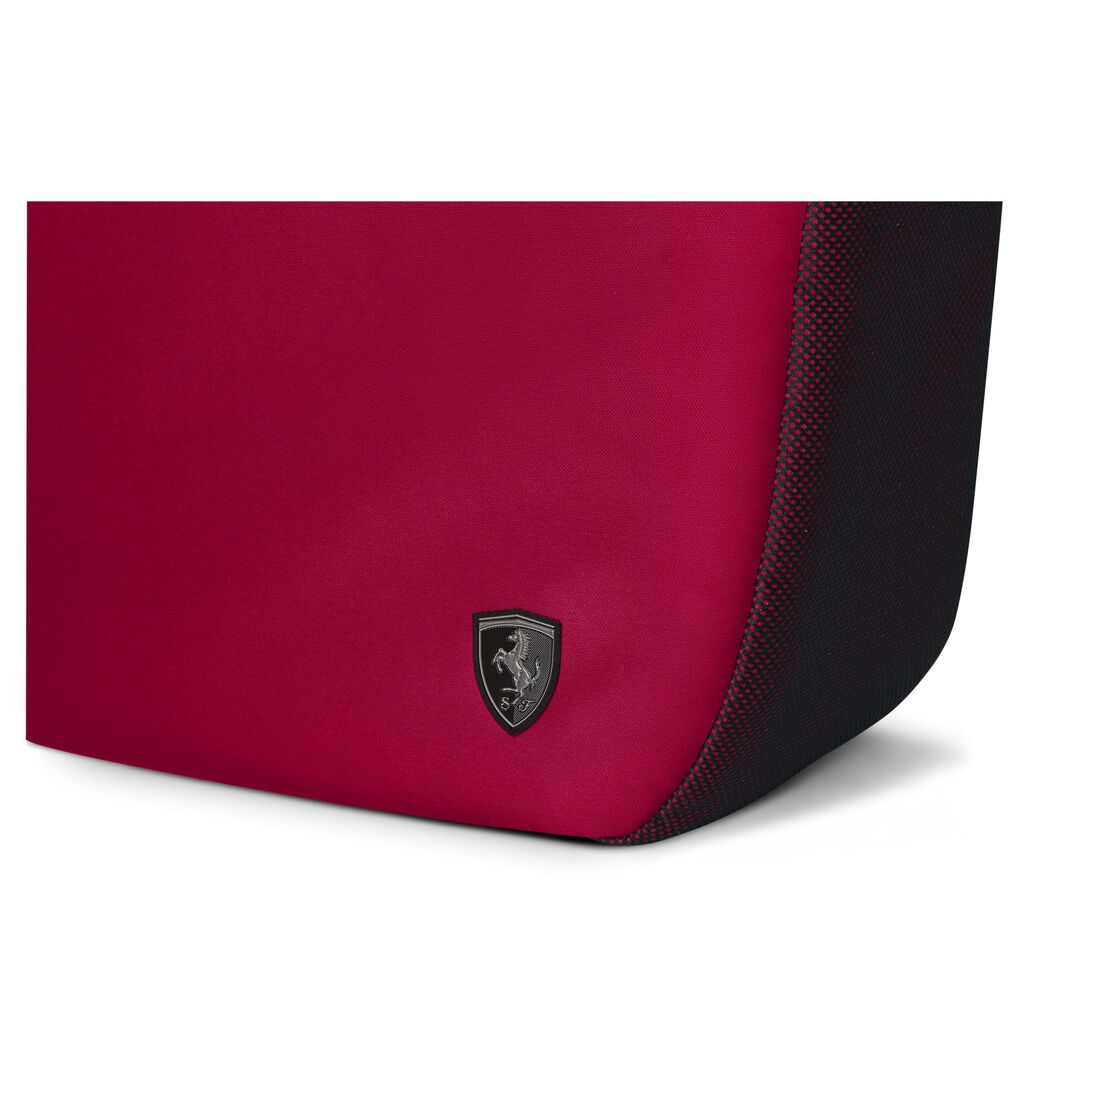 CYBEX Wickeltasche - Ferrari Racing Red in Ferrari Racing Red large Bild 7